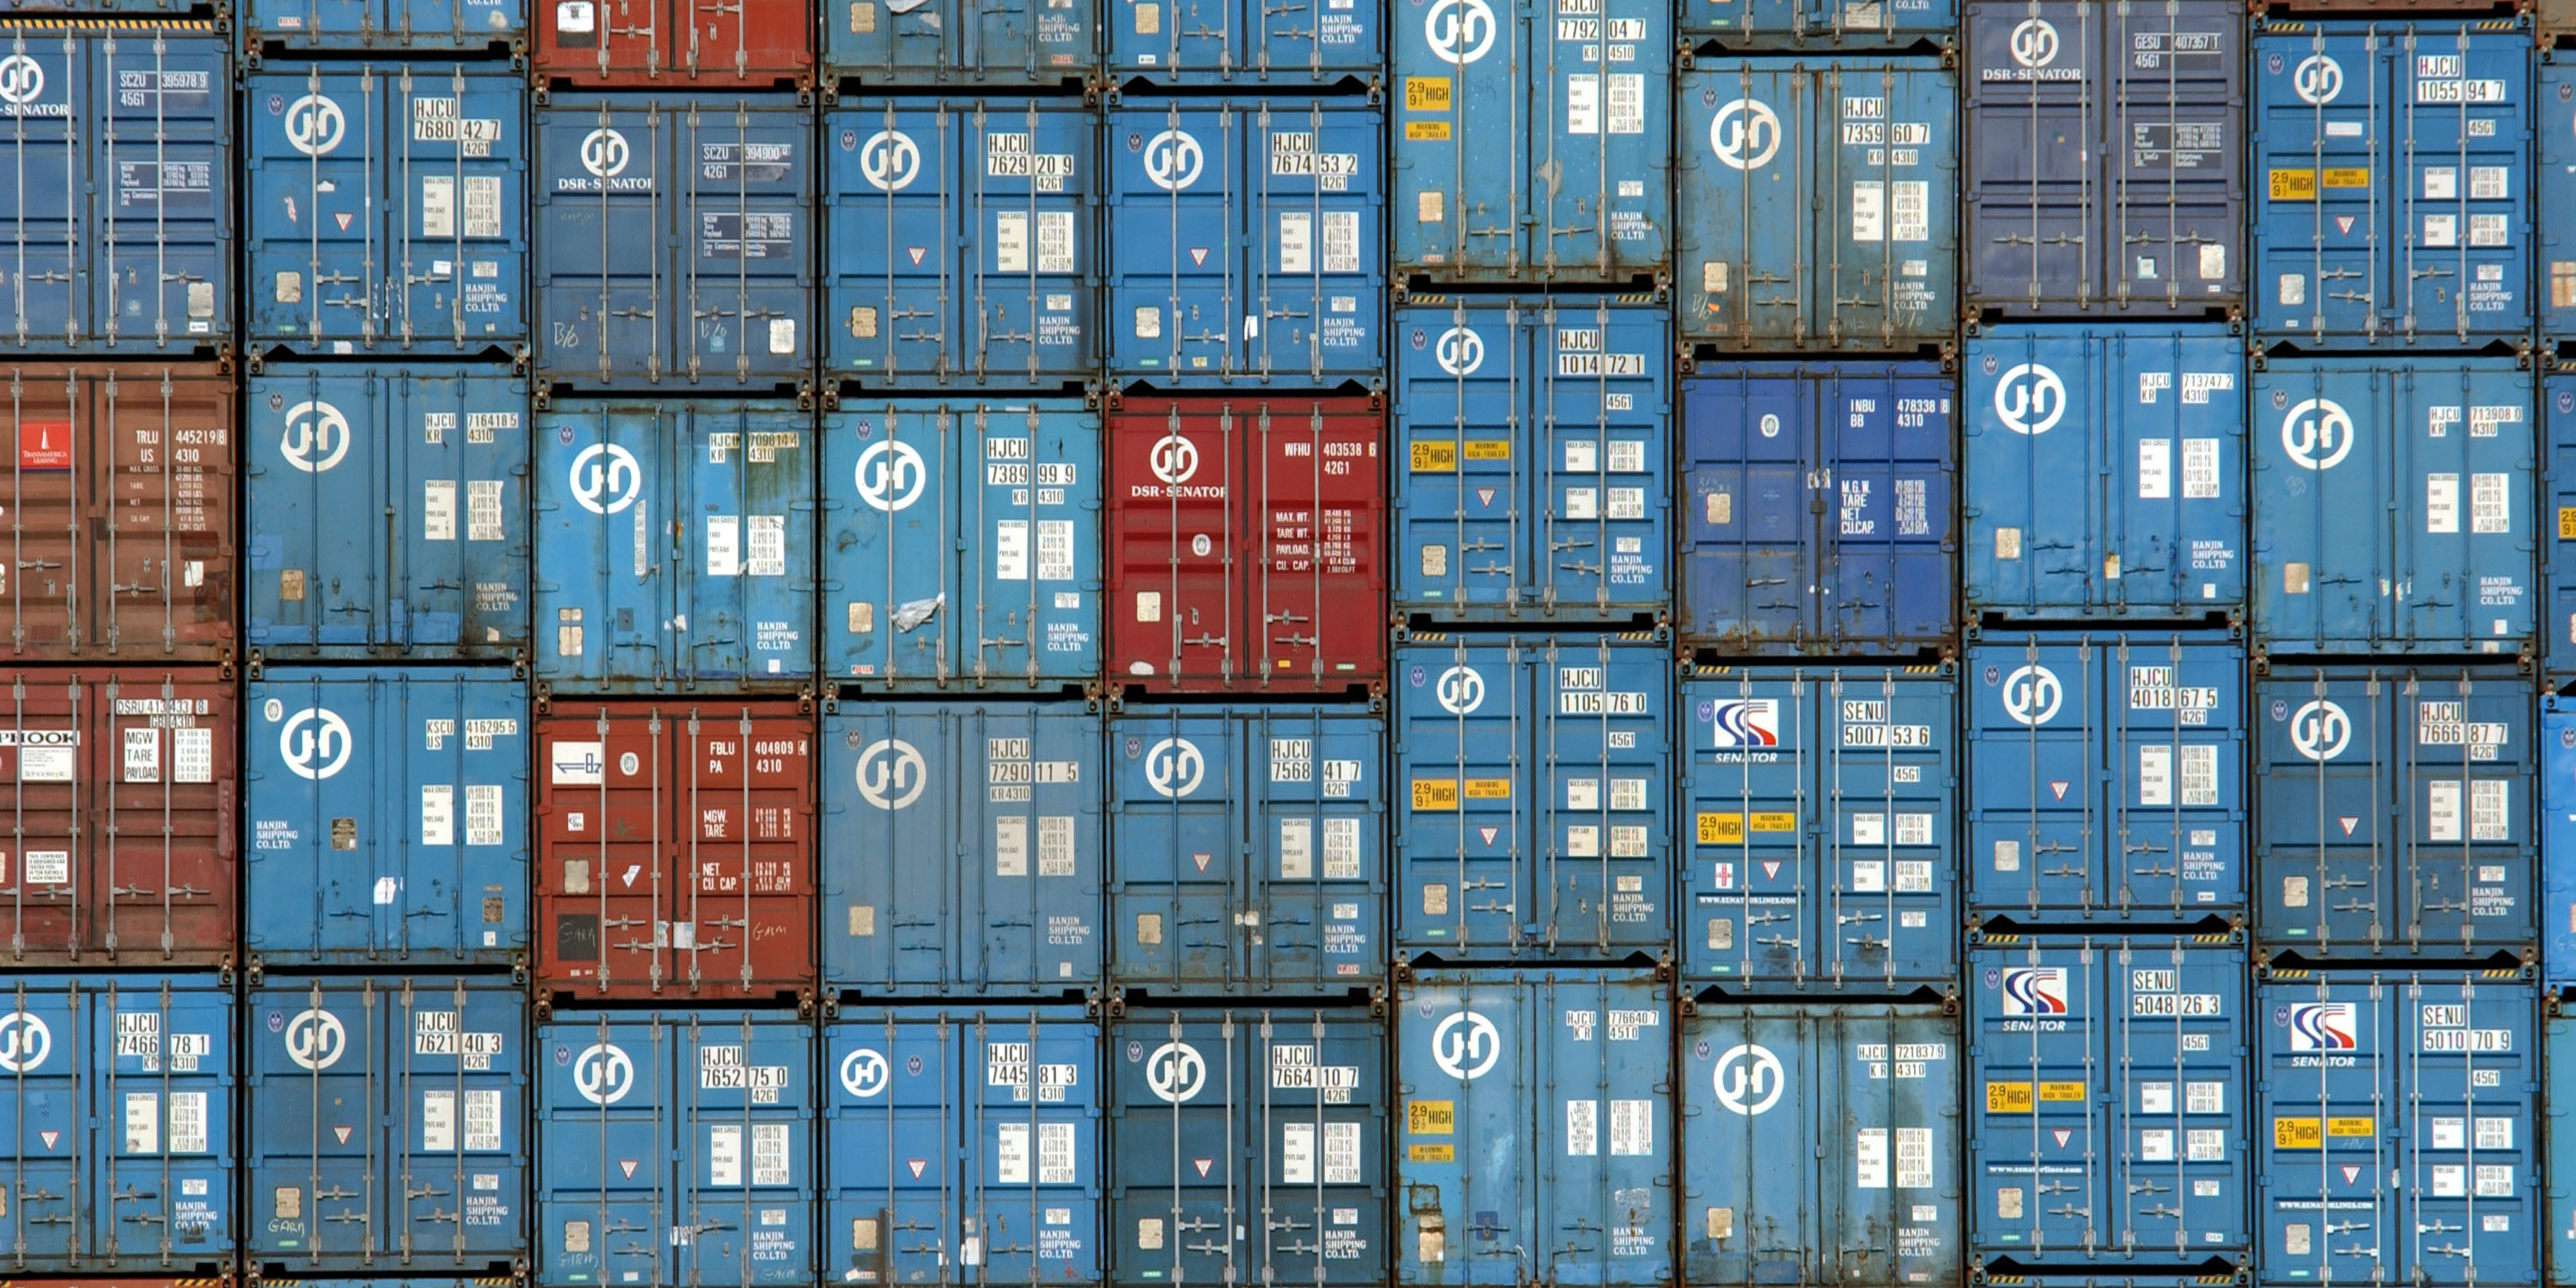 Nuclear Weapons Hidden in Cargo Containers Won't Remain Hidden for Long